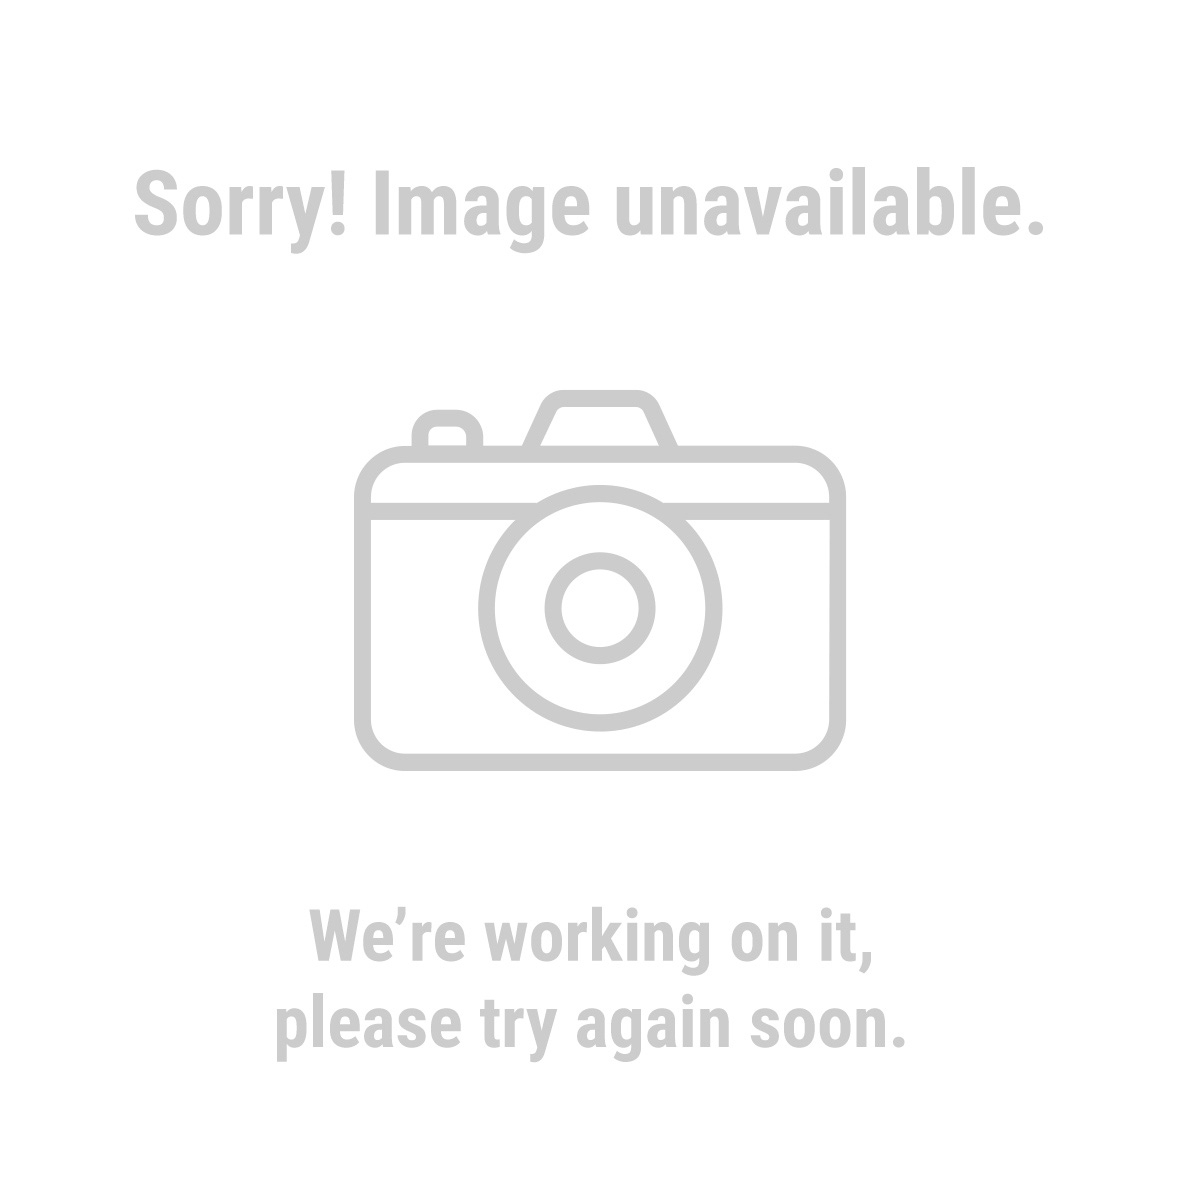 RoadShock 37350 Amber Lens Halogen Lights